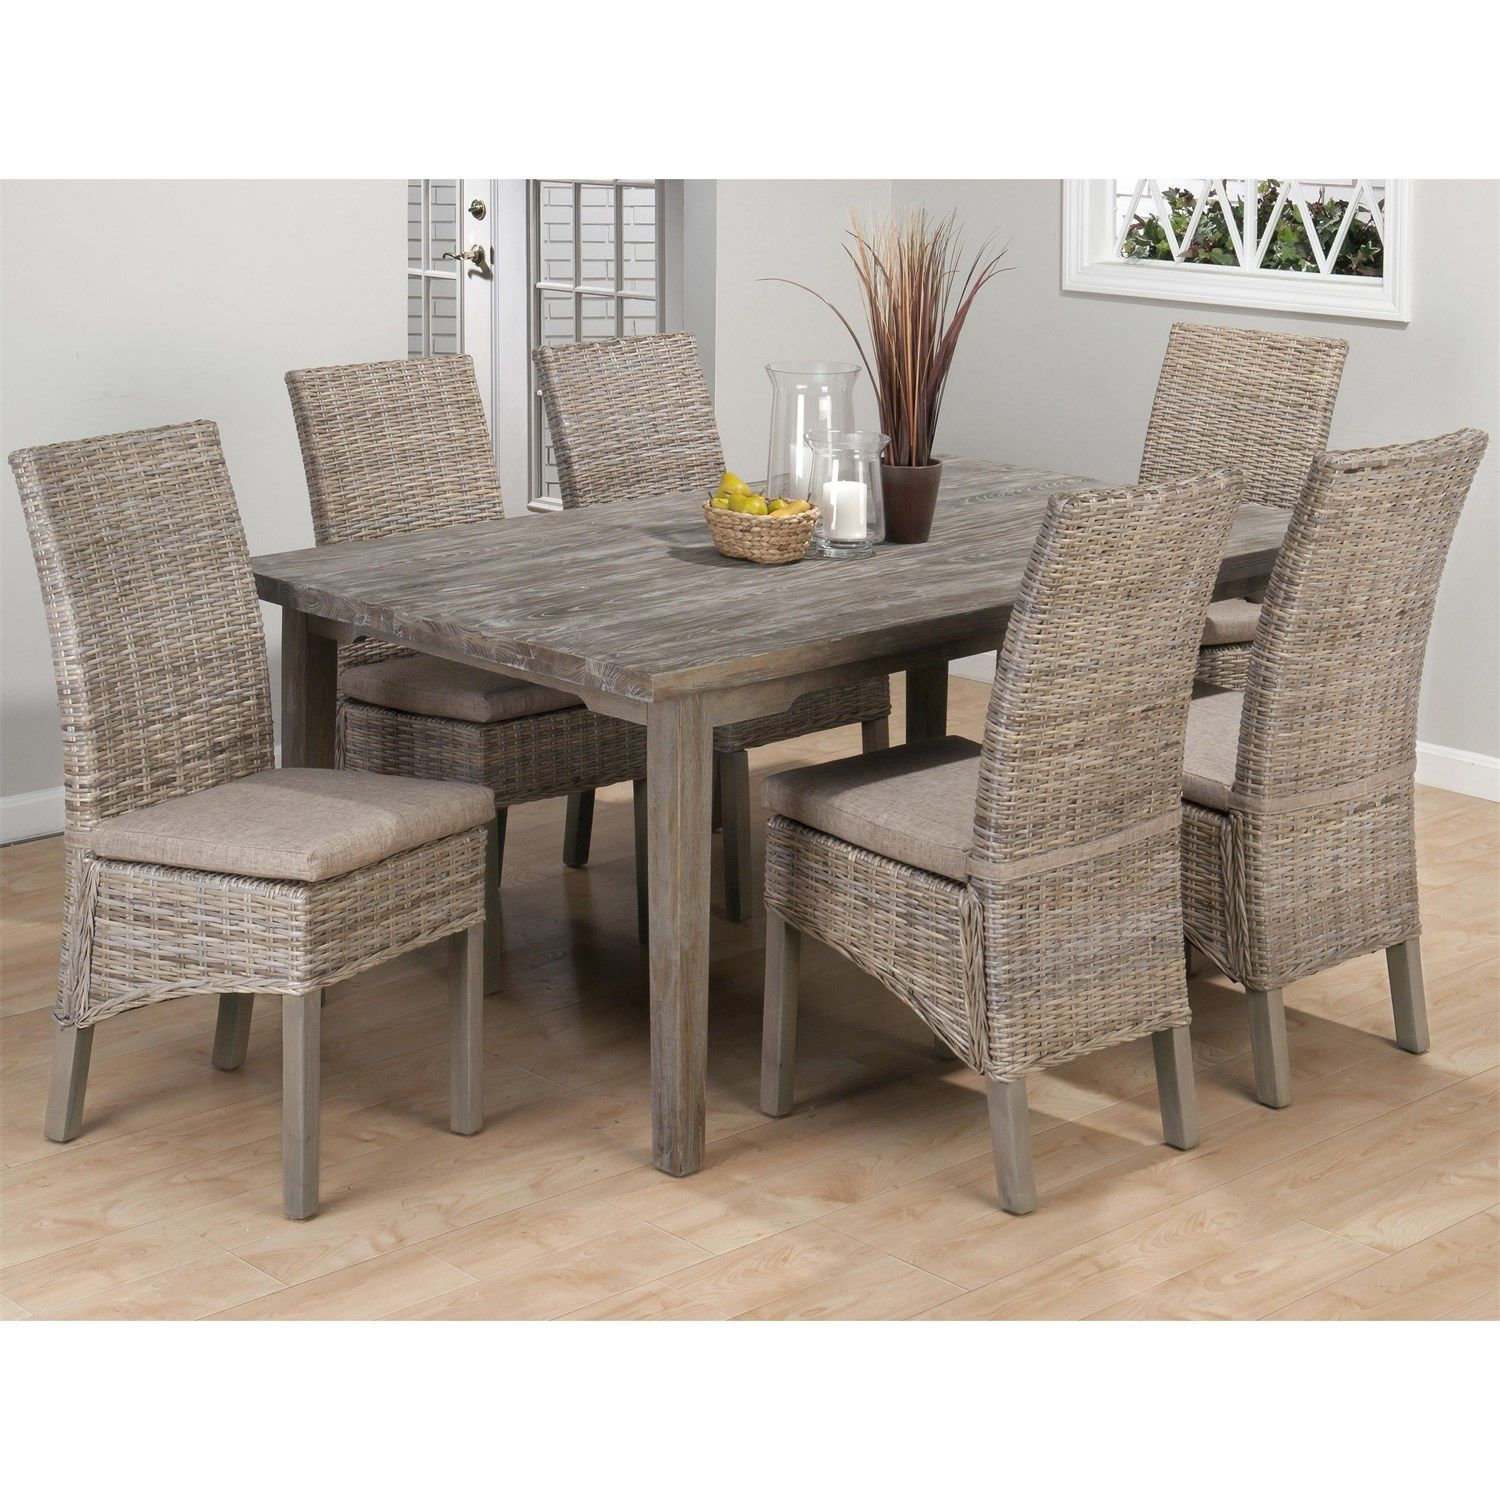 Jofran 856-871 Coastal Kubu Rattan Dining Side Chair with Oatmeal ...